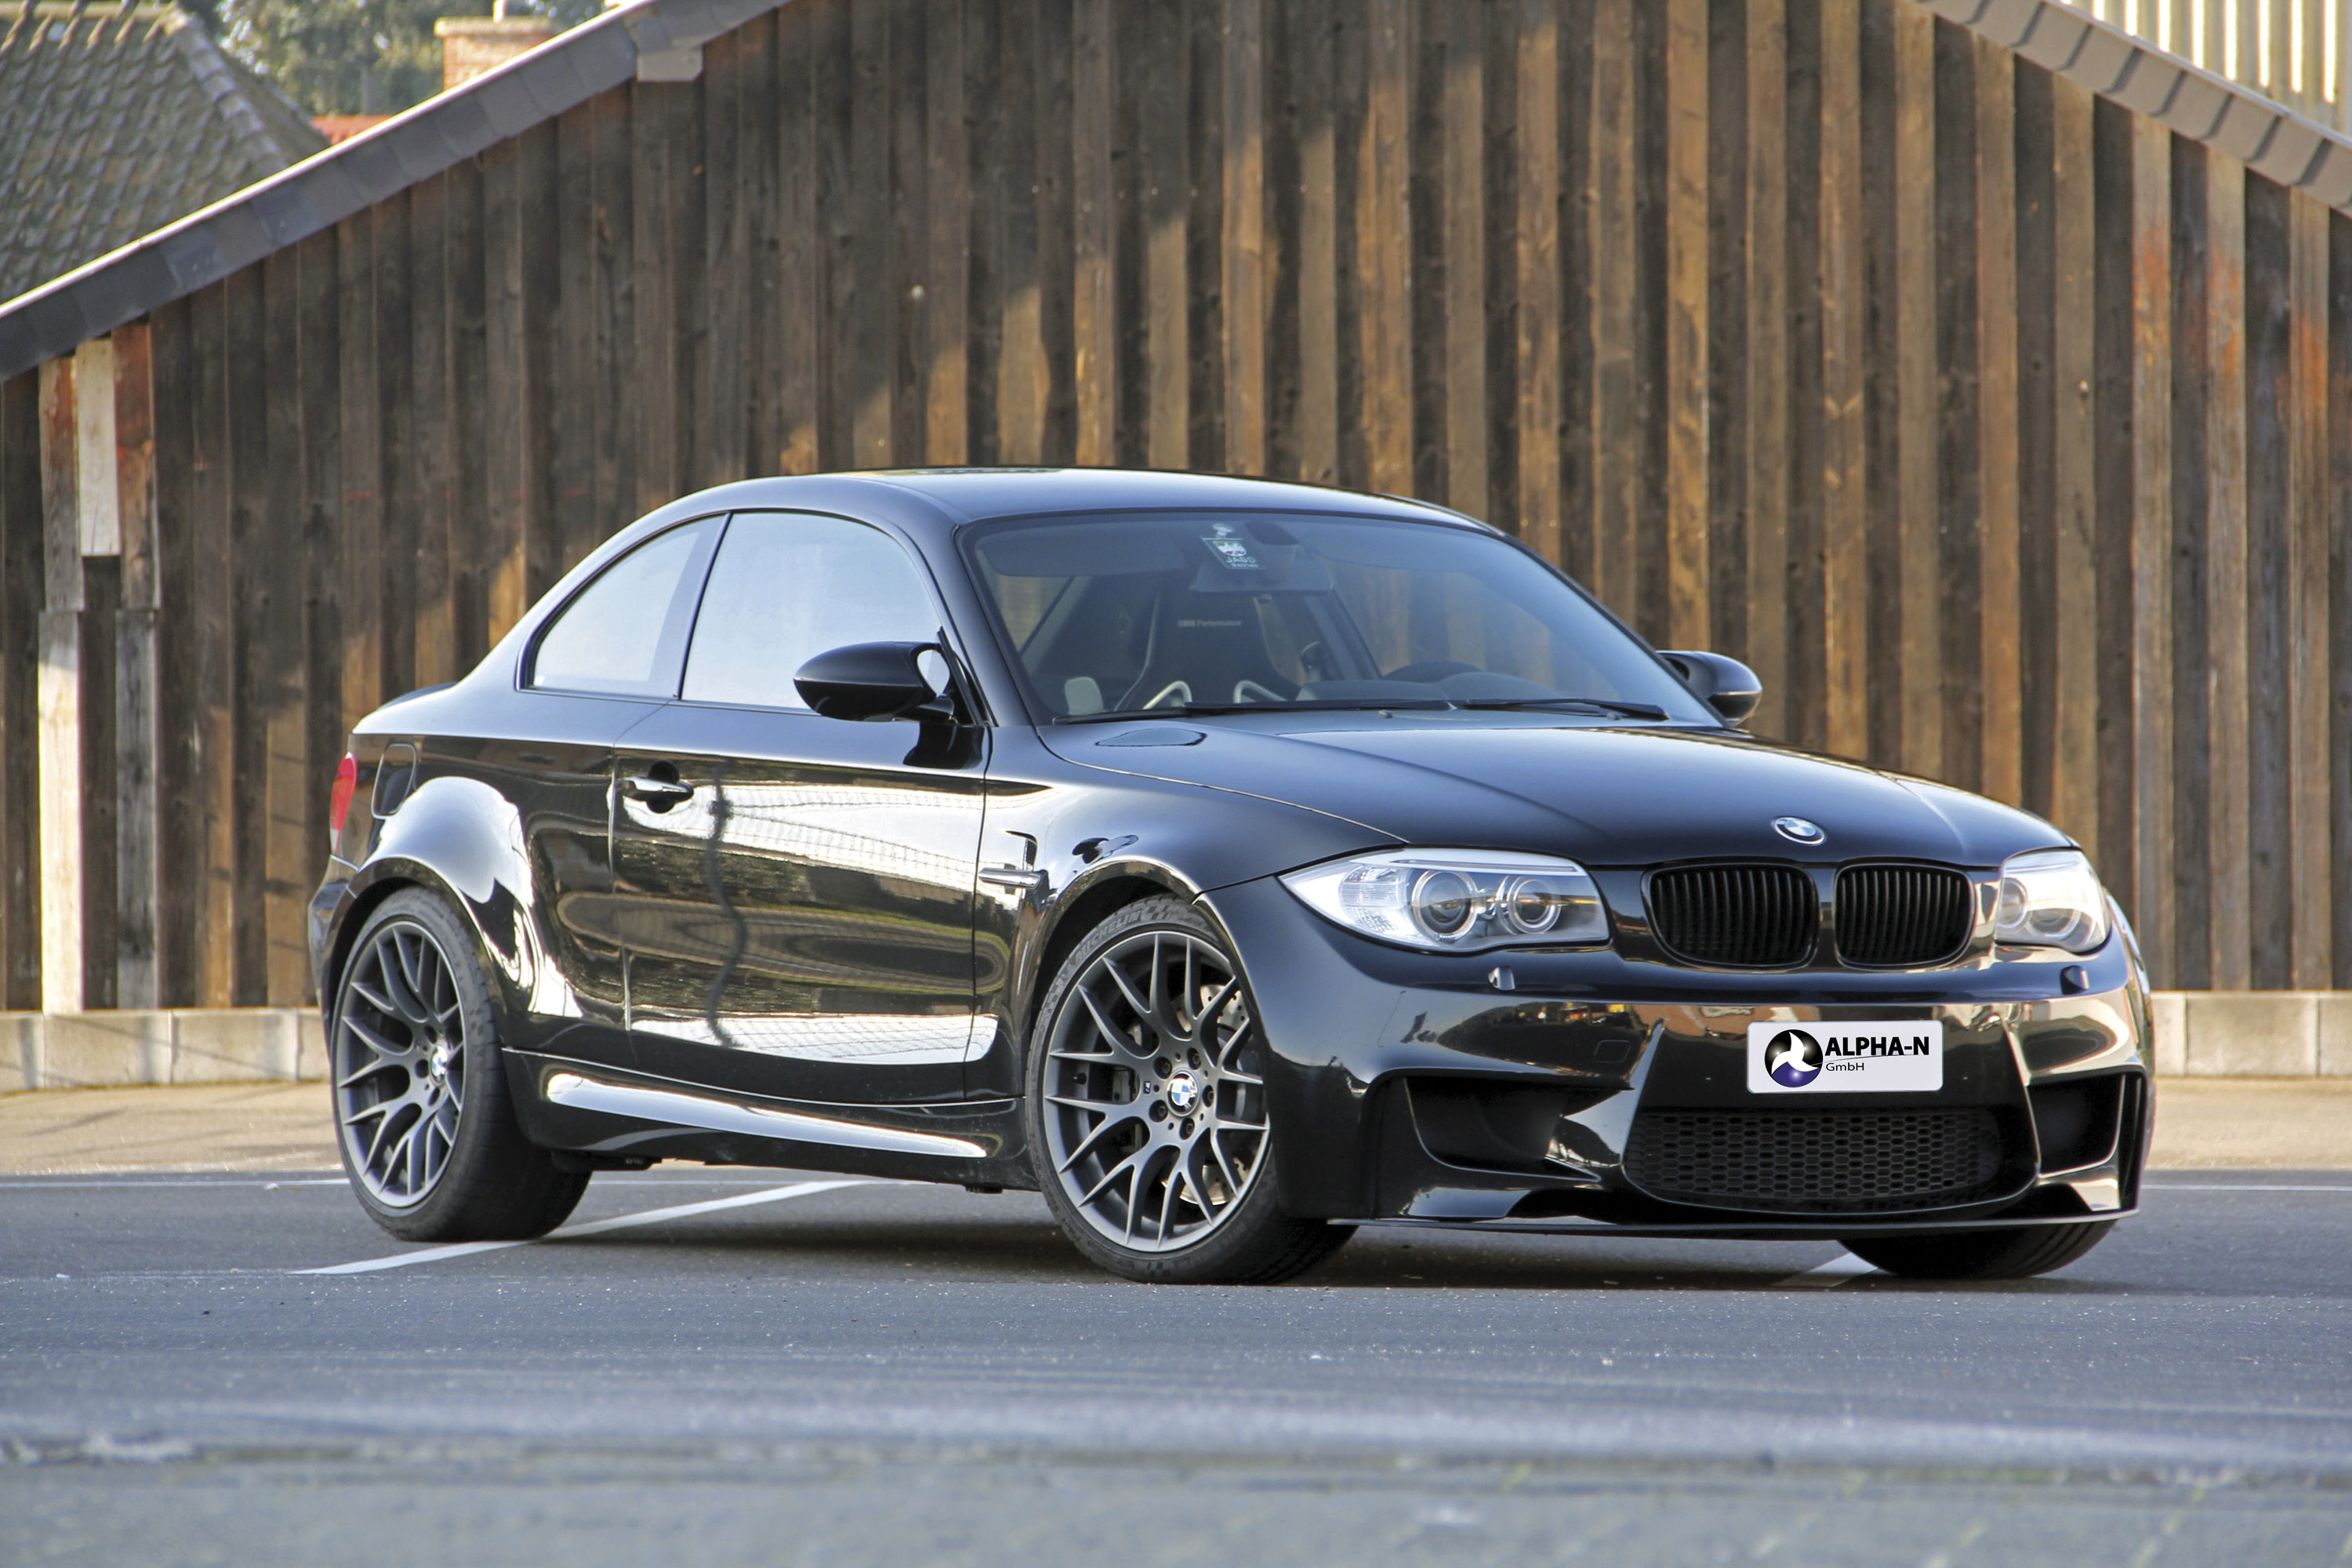 alpha n performance makes a 564 hp bmw 1 series m coupe. Black Bedroom Furniture Sets. Home Design Ideas